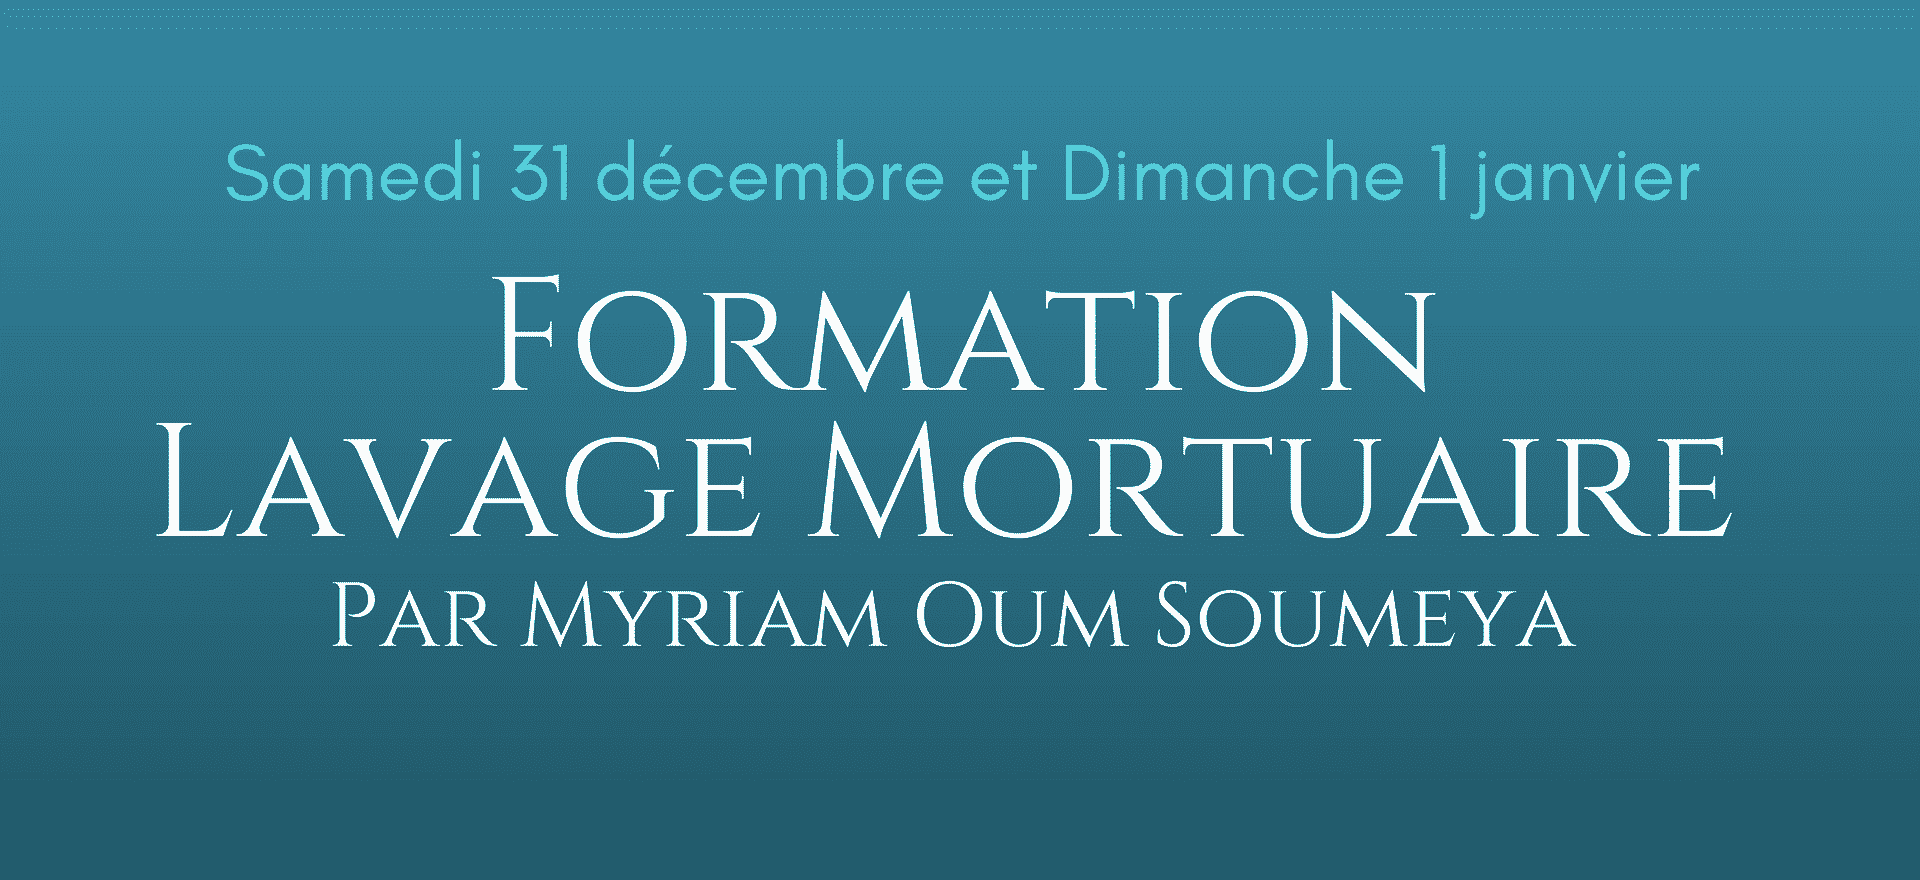 Formation lavage mortuaire